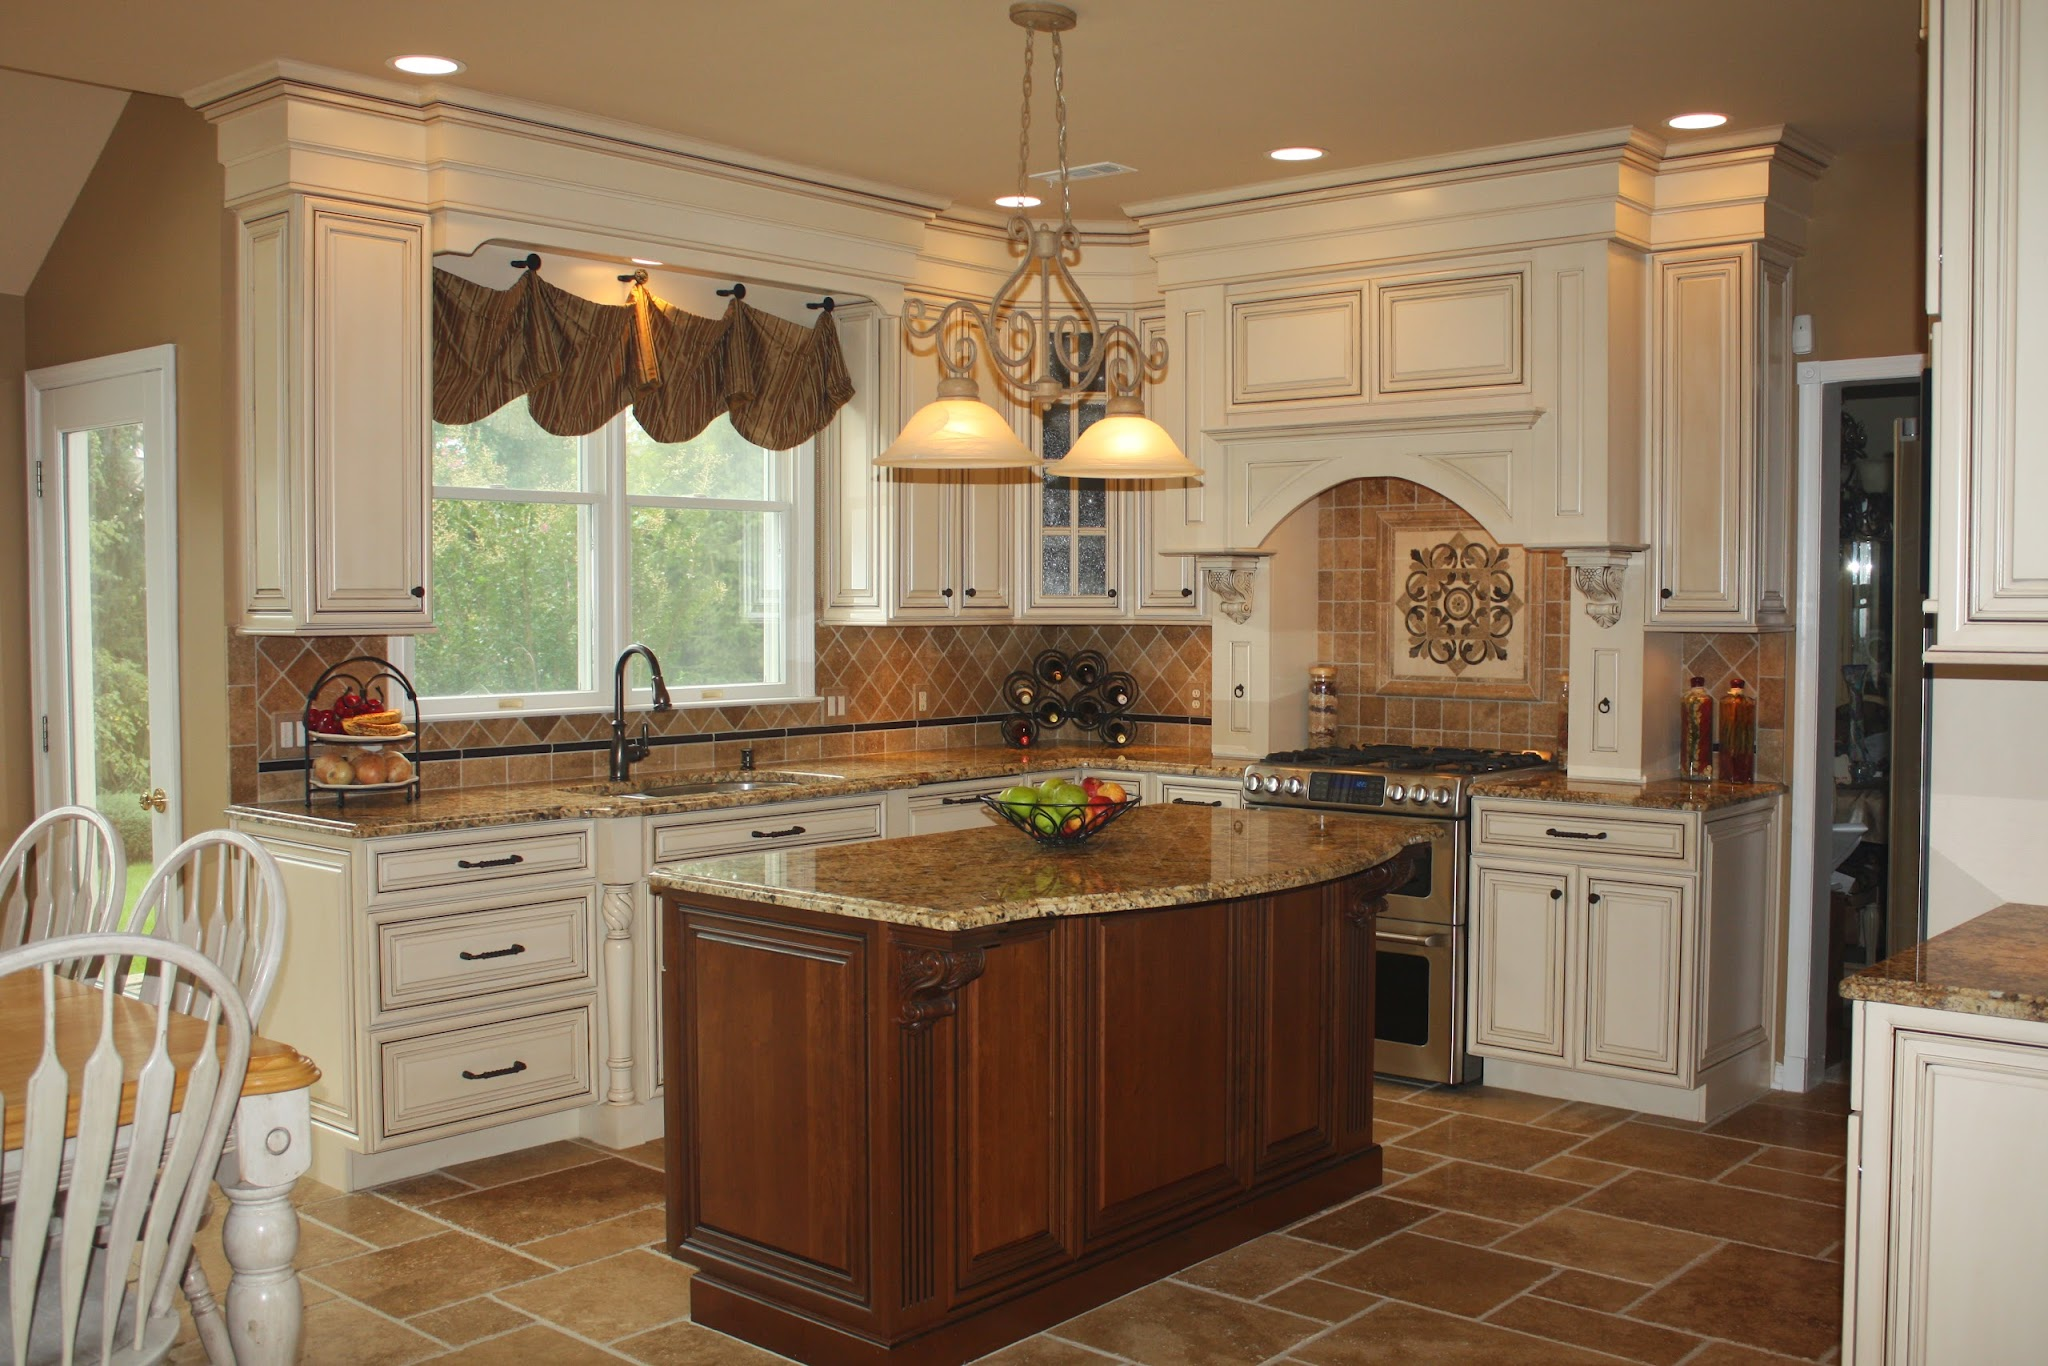 Houzz kitchen dreams house furniture - Remodeling kitchen ideas ...